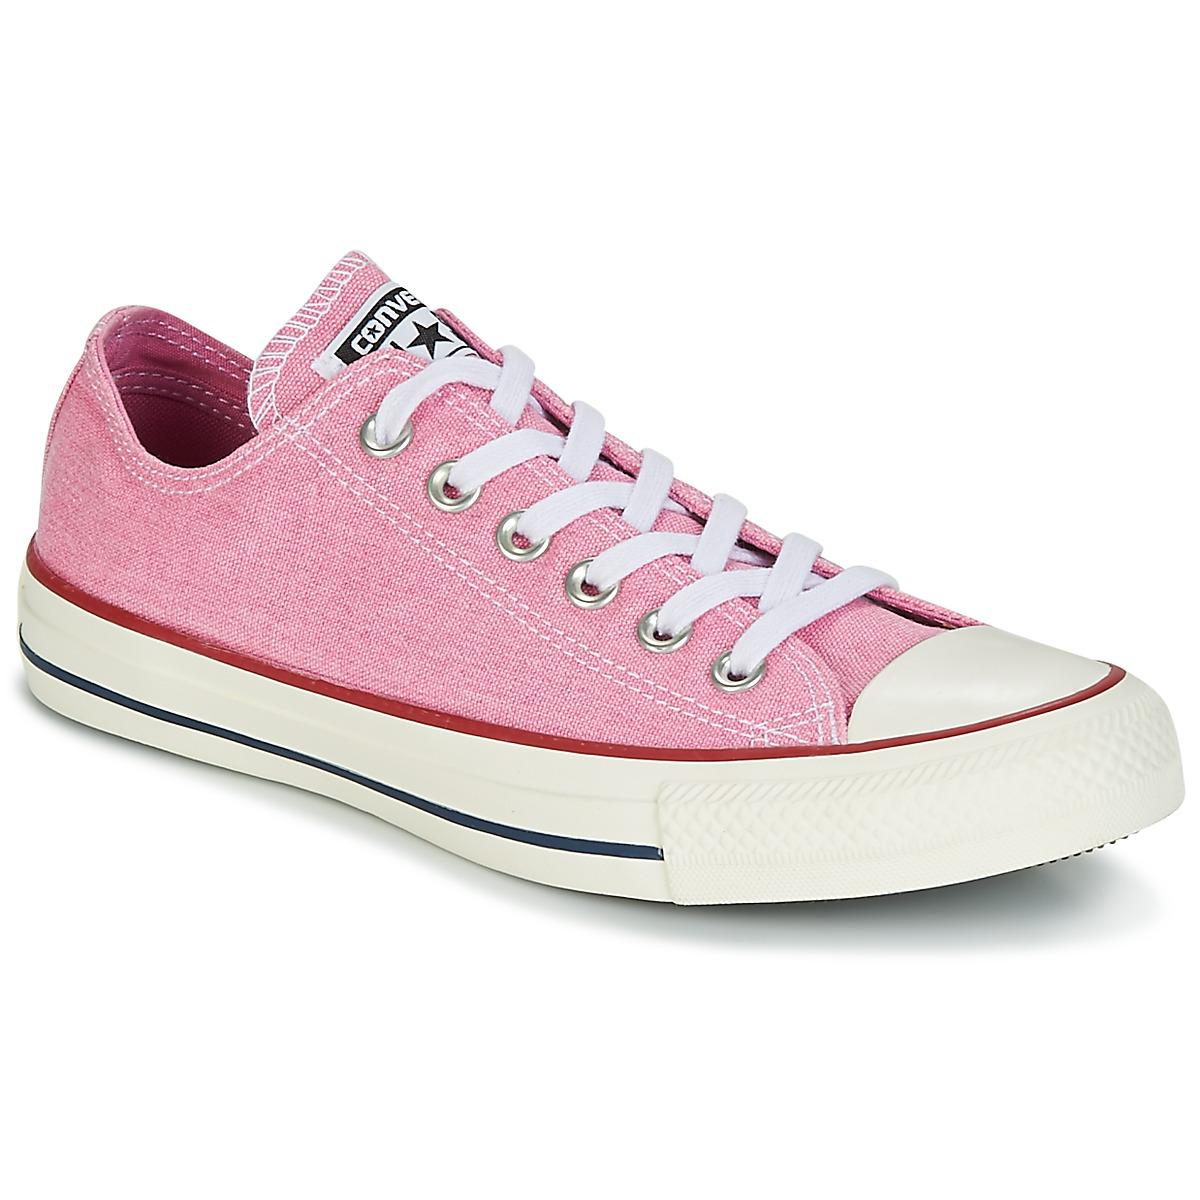 d4de2ef43135 Converse Chuck Taylor All Star Ox Stone Wash Women s Shoes (trainers) In  Pink in Pink - Lyst